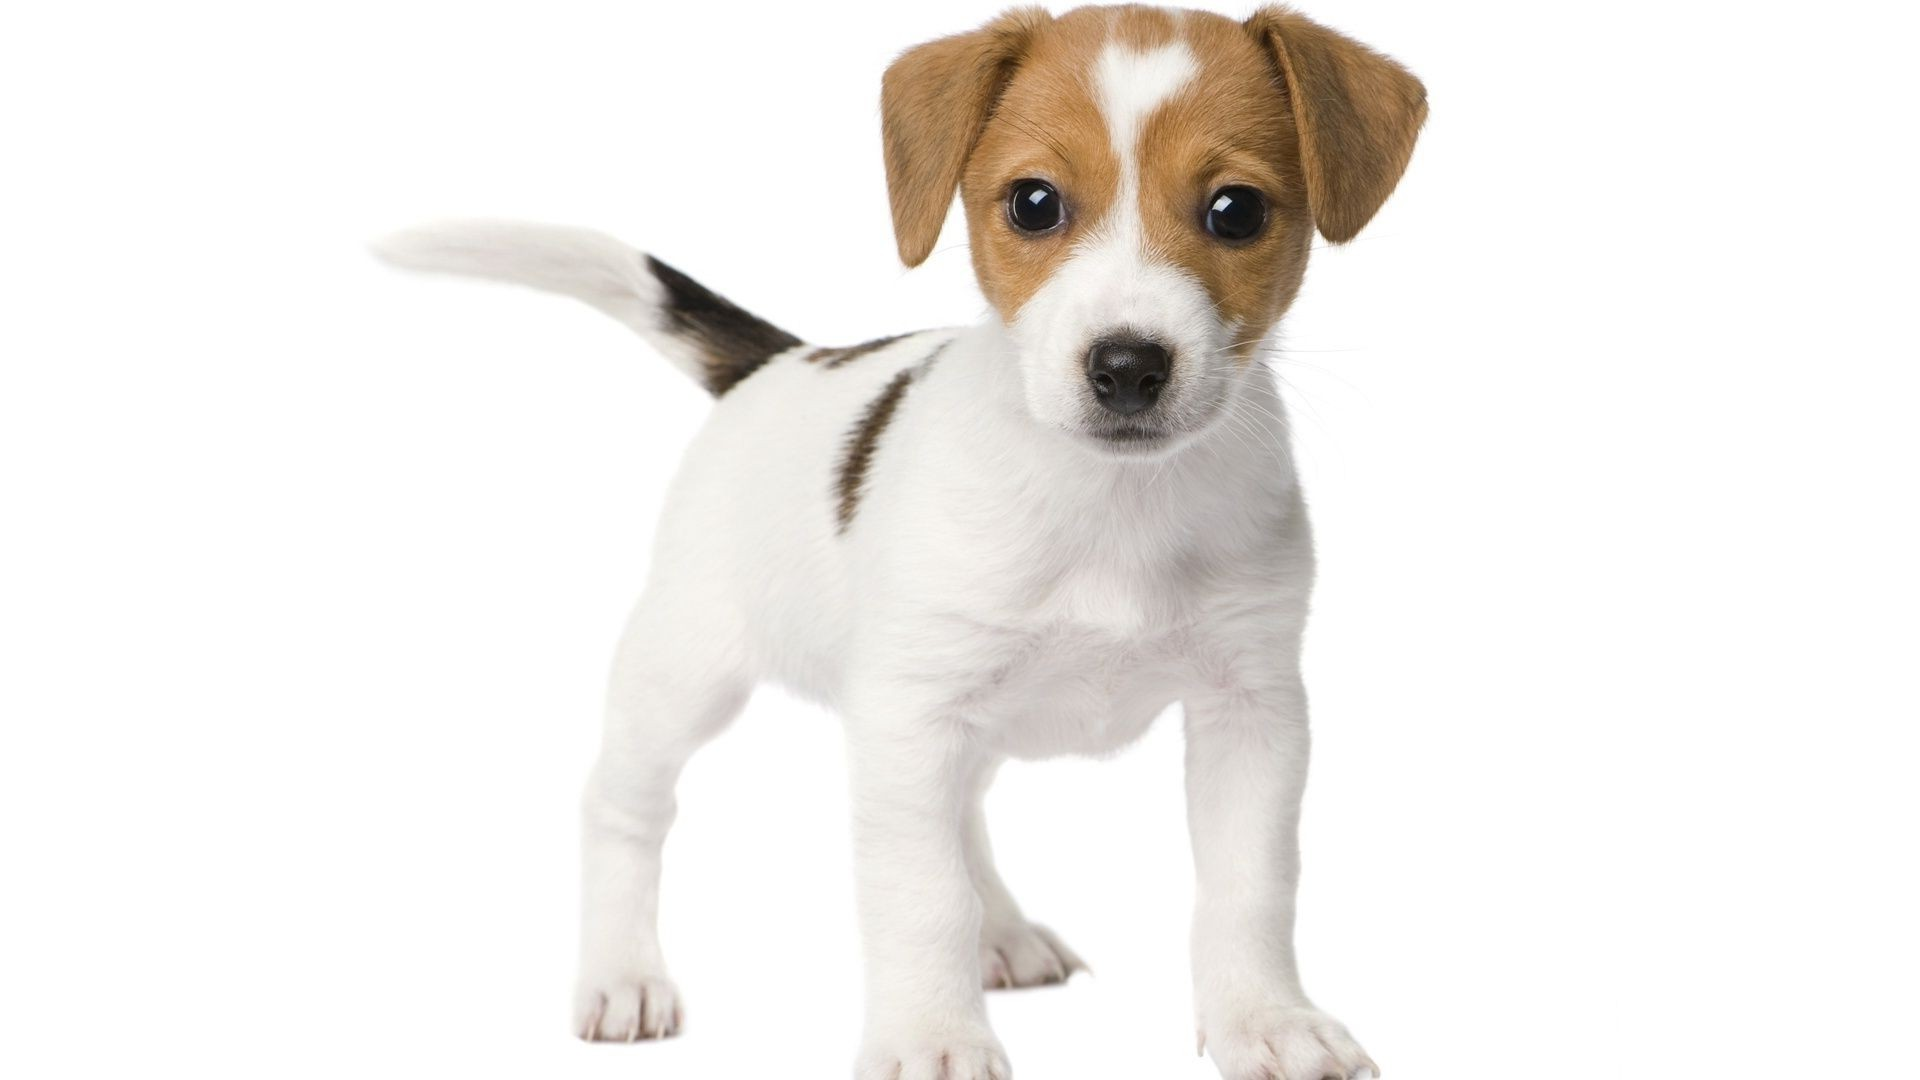 dogs dog cute pet canine mammal animal puppy little sit purebred pedigree isolated funny breed looking studio terrier